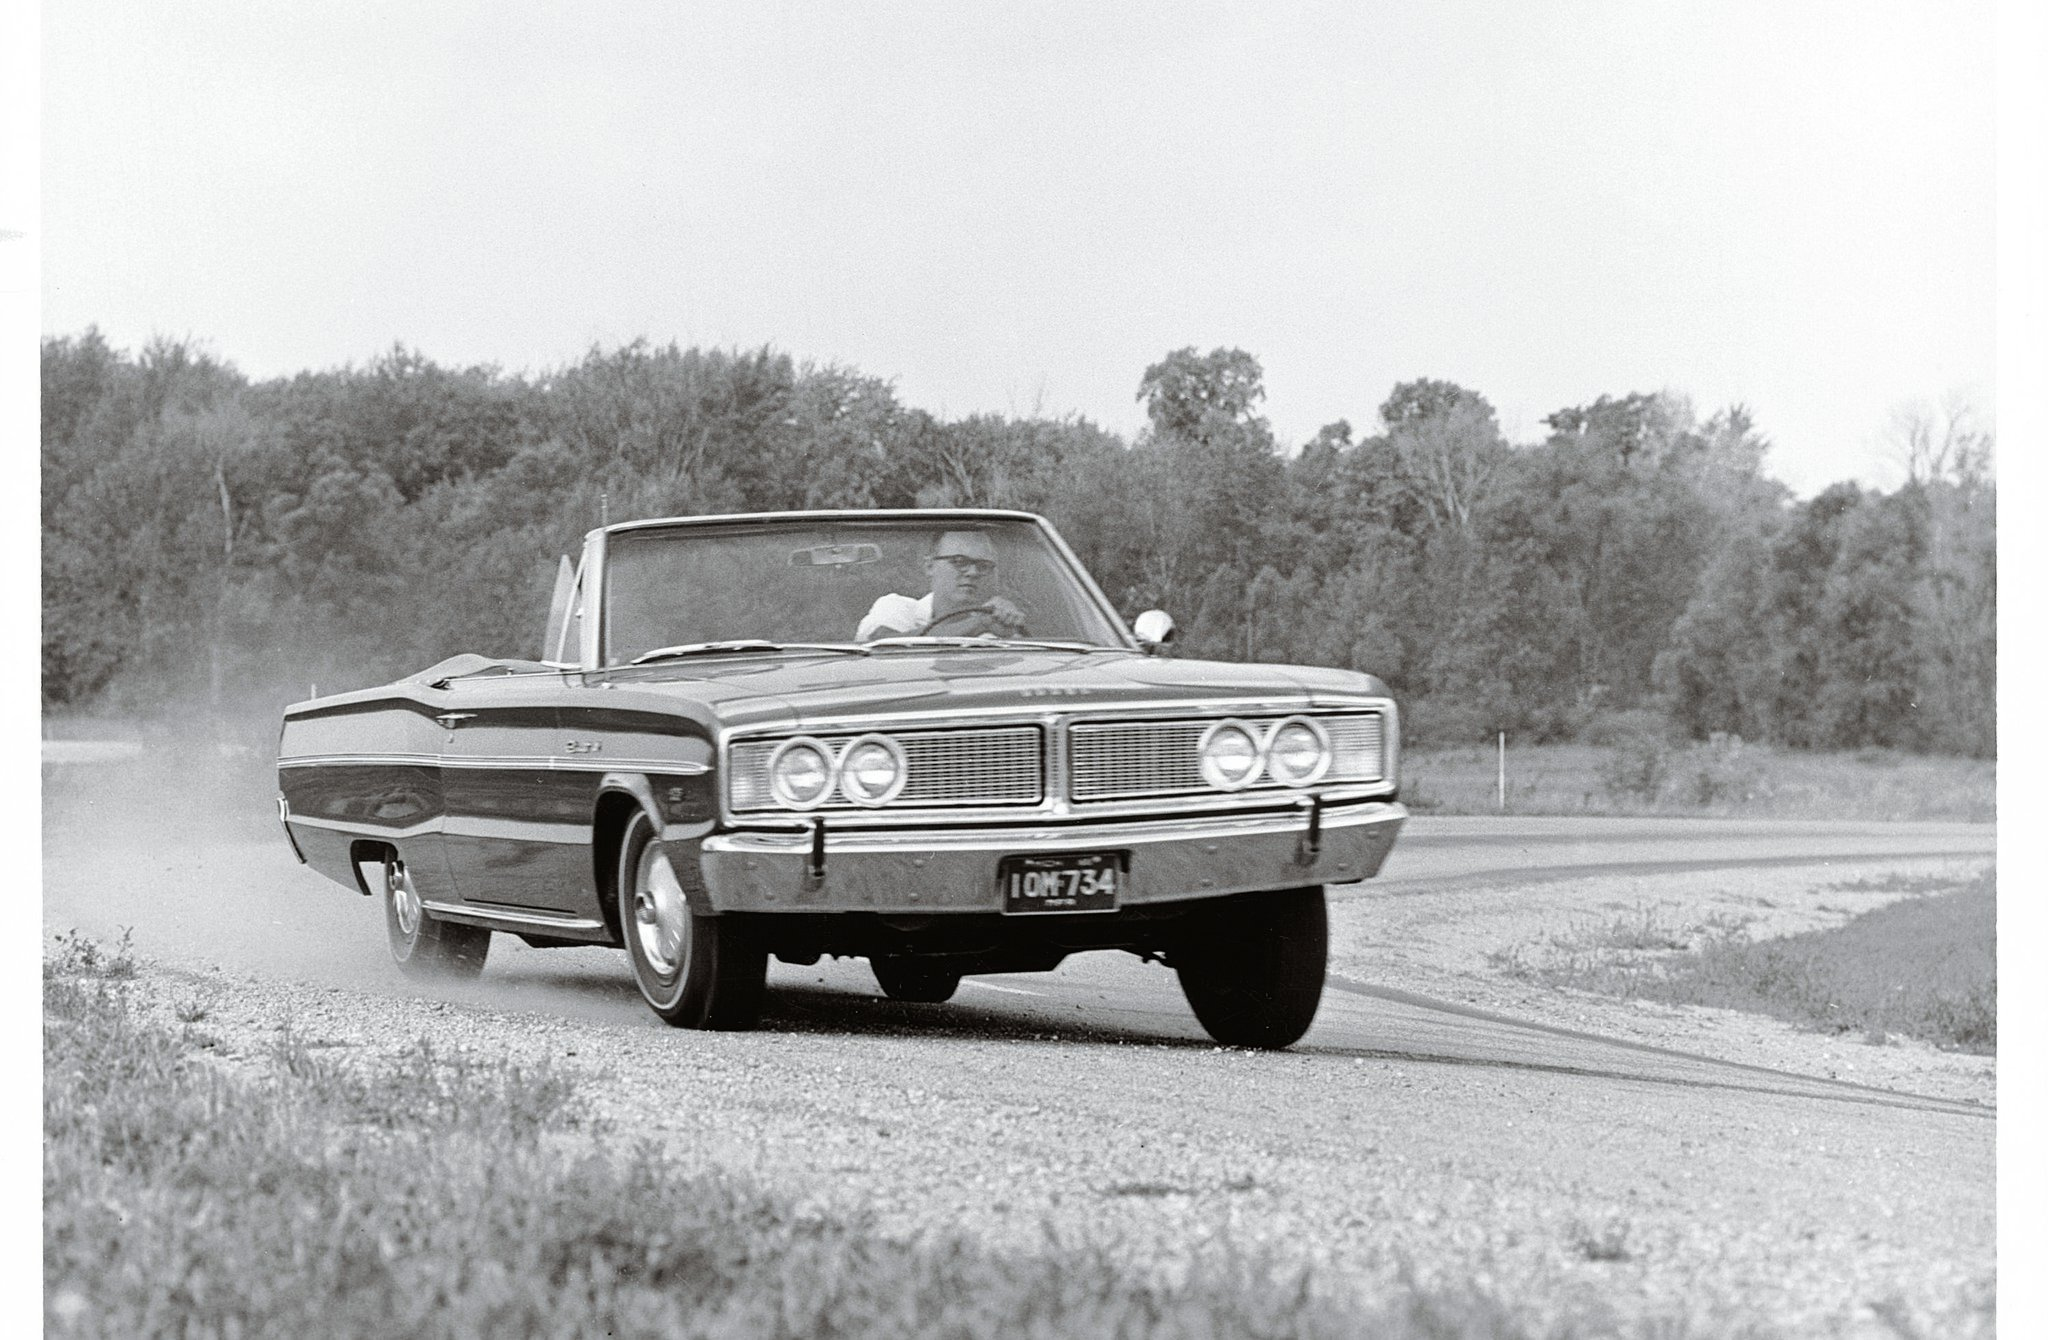 "The Hemi Coronet was not just a straight-line warrior. ""Coming 'round the bend at speed, super-bomb displayed a marked tendency to stay in the groove. In hard cornering car has mild understeer which became oversteer as more power was applied."" Sounds like fun."